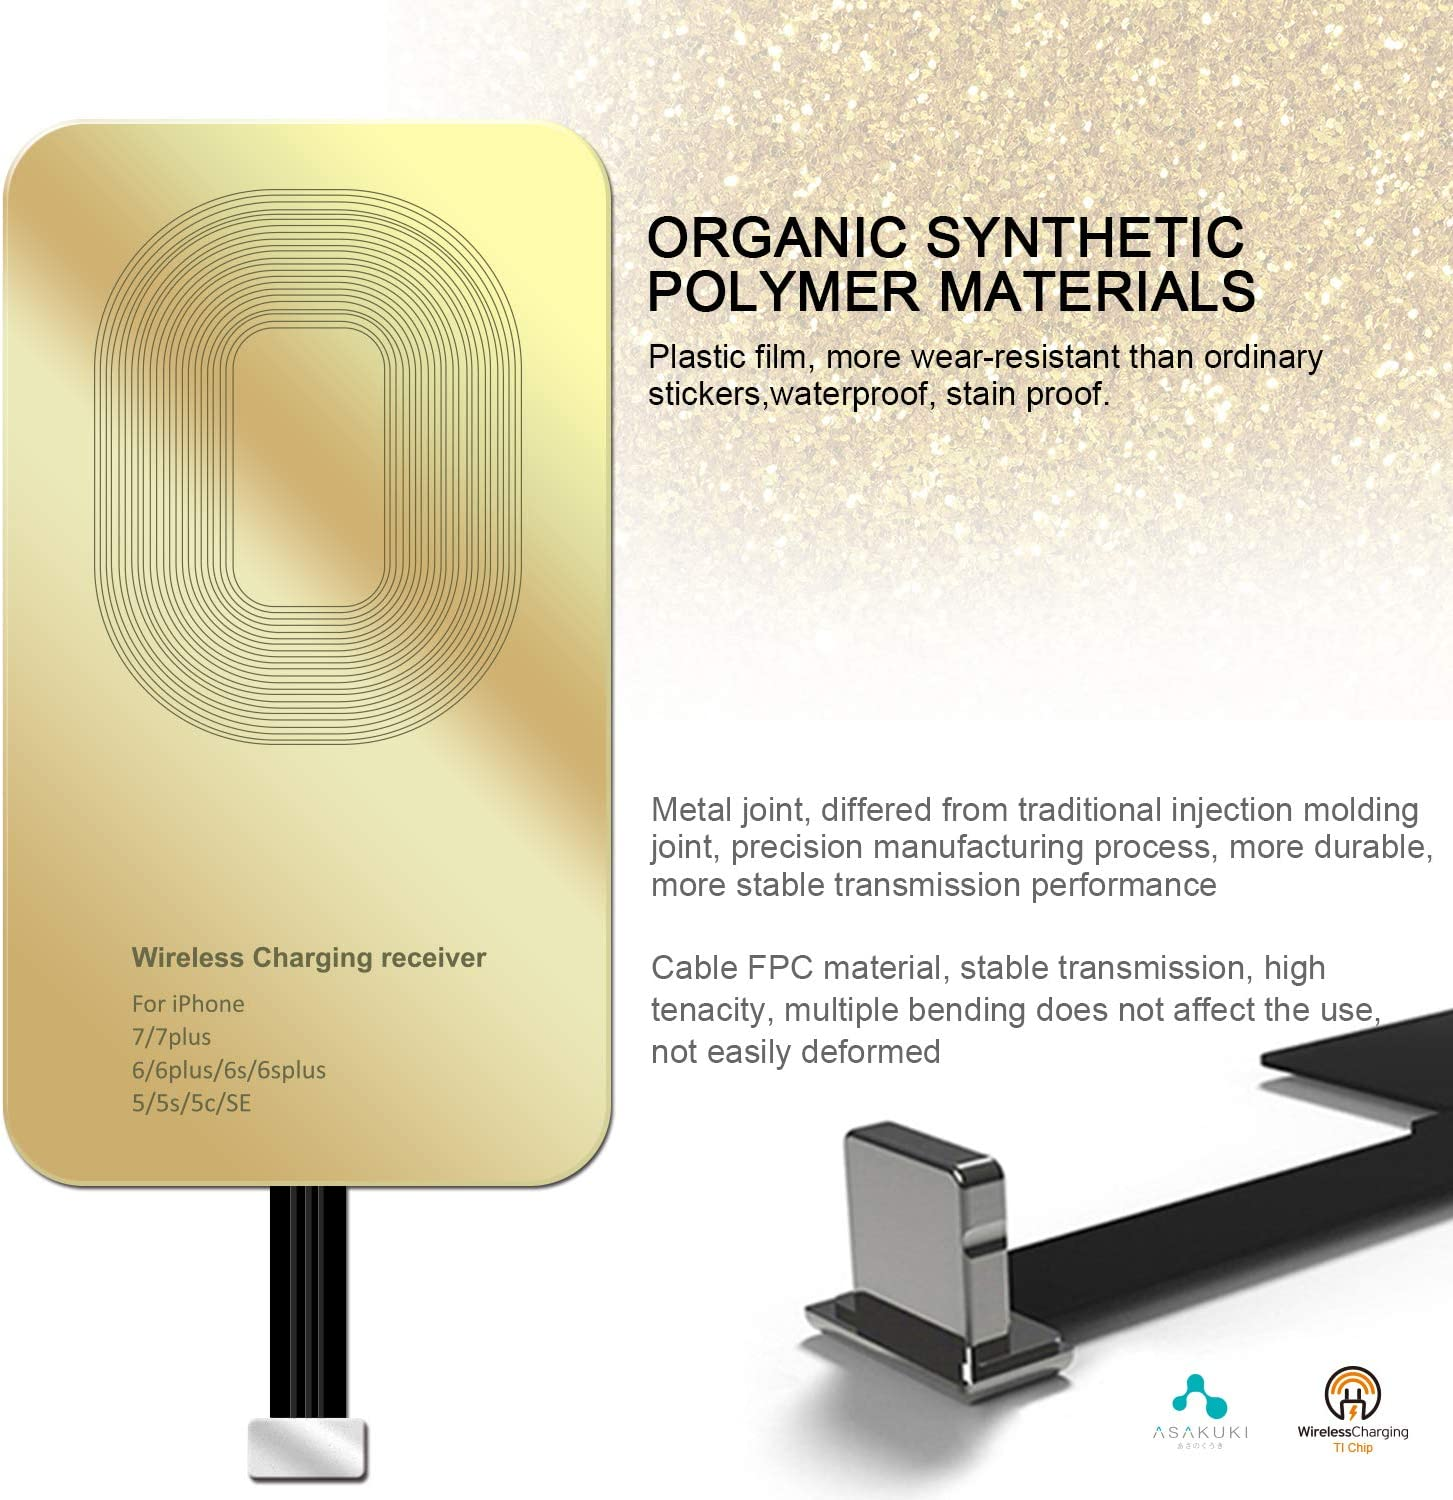 Fast/&Smart Microchip Technology SAKUKI Wireless Charging Receiver Ultra-Thin Copper Coil Patch with Overvoltage Protection for QI Wireless Charging Adapter Receiver